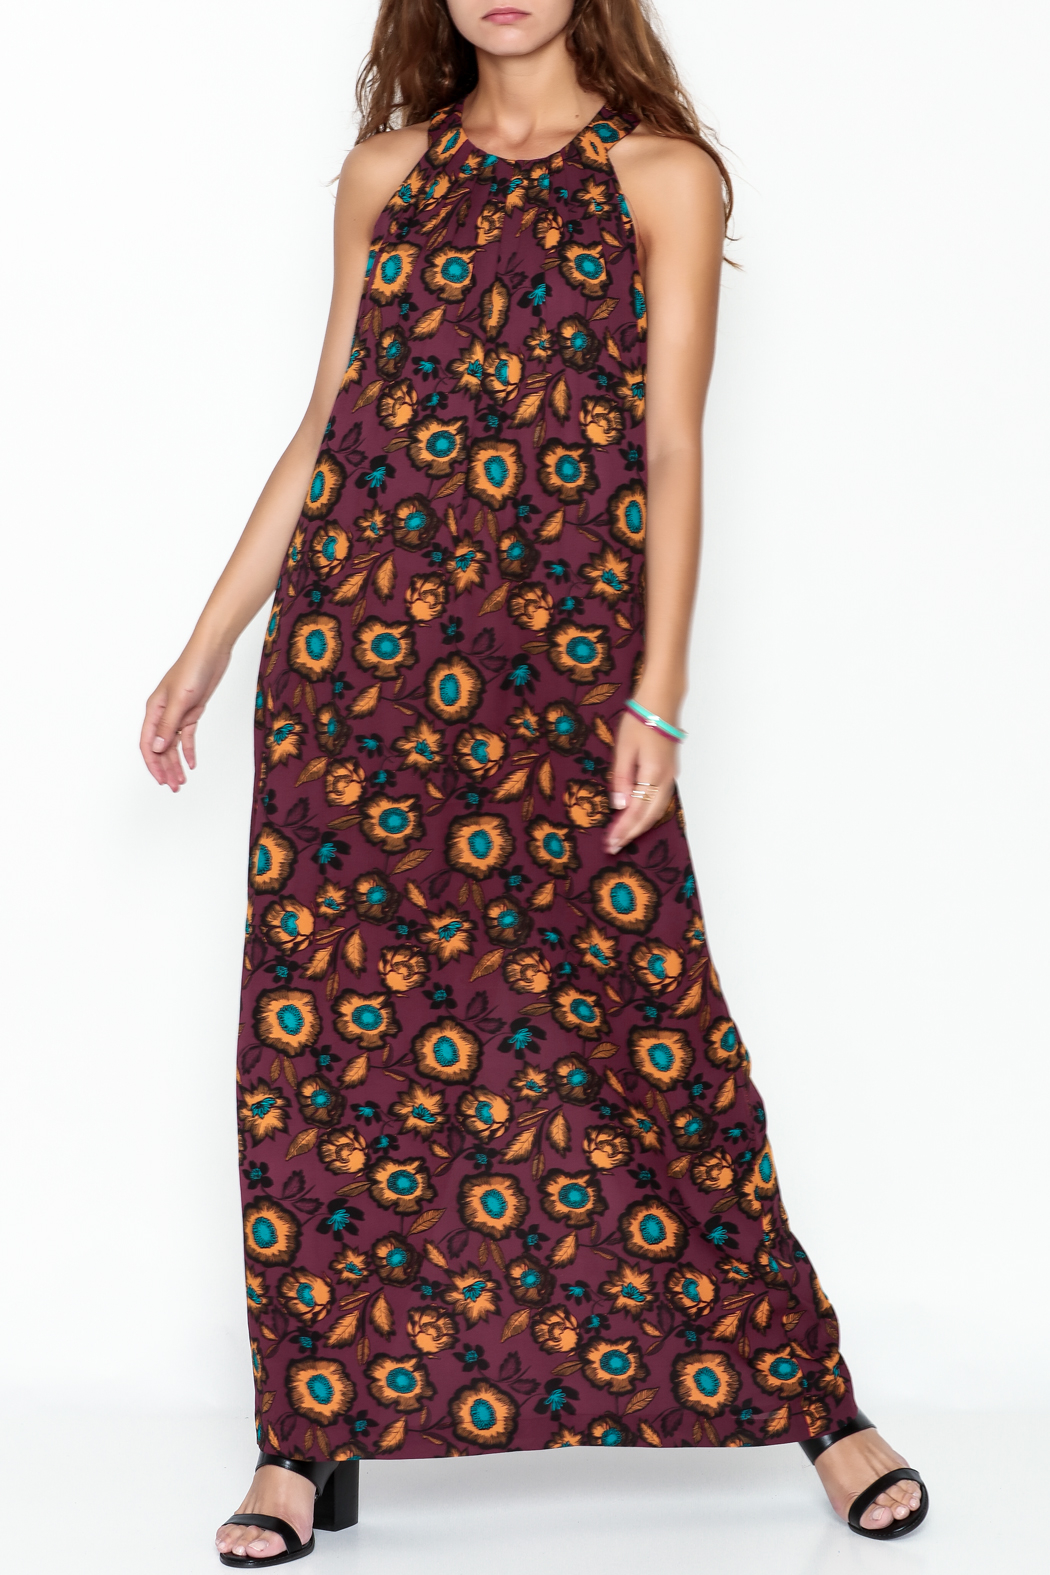 Everly Burgundy Floral Maxi Dress - Front Cropped Image